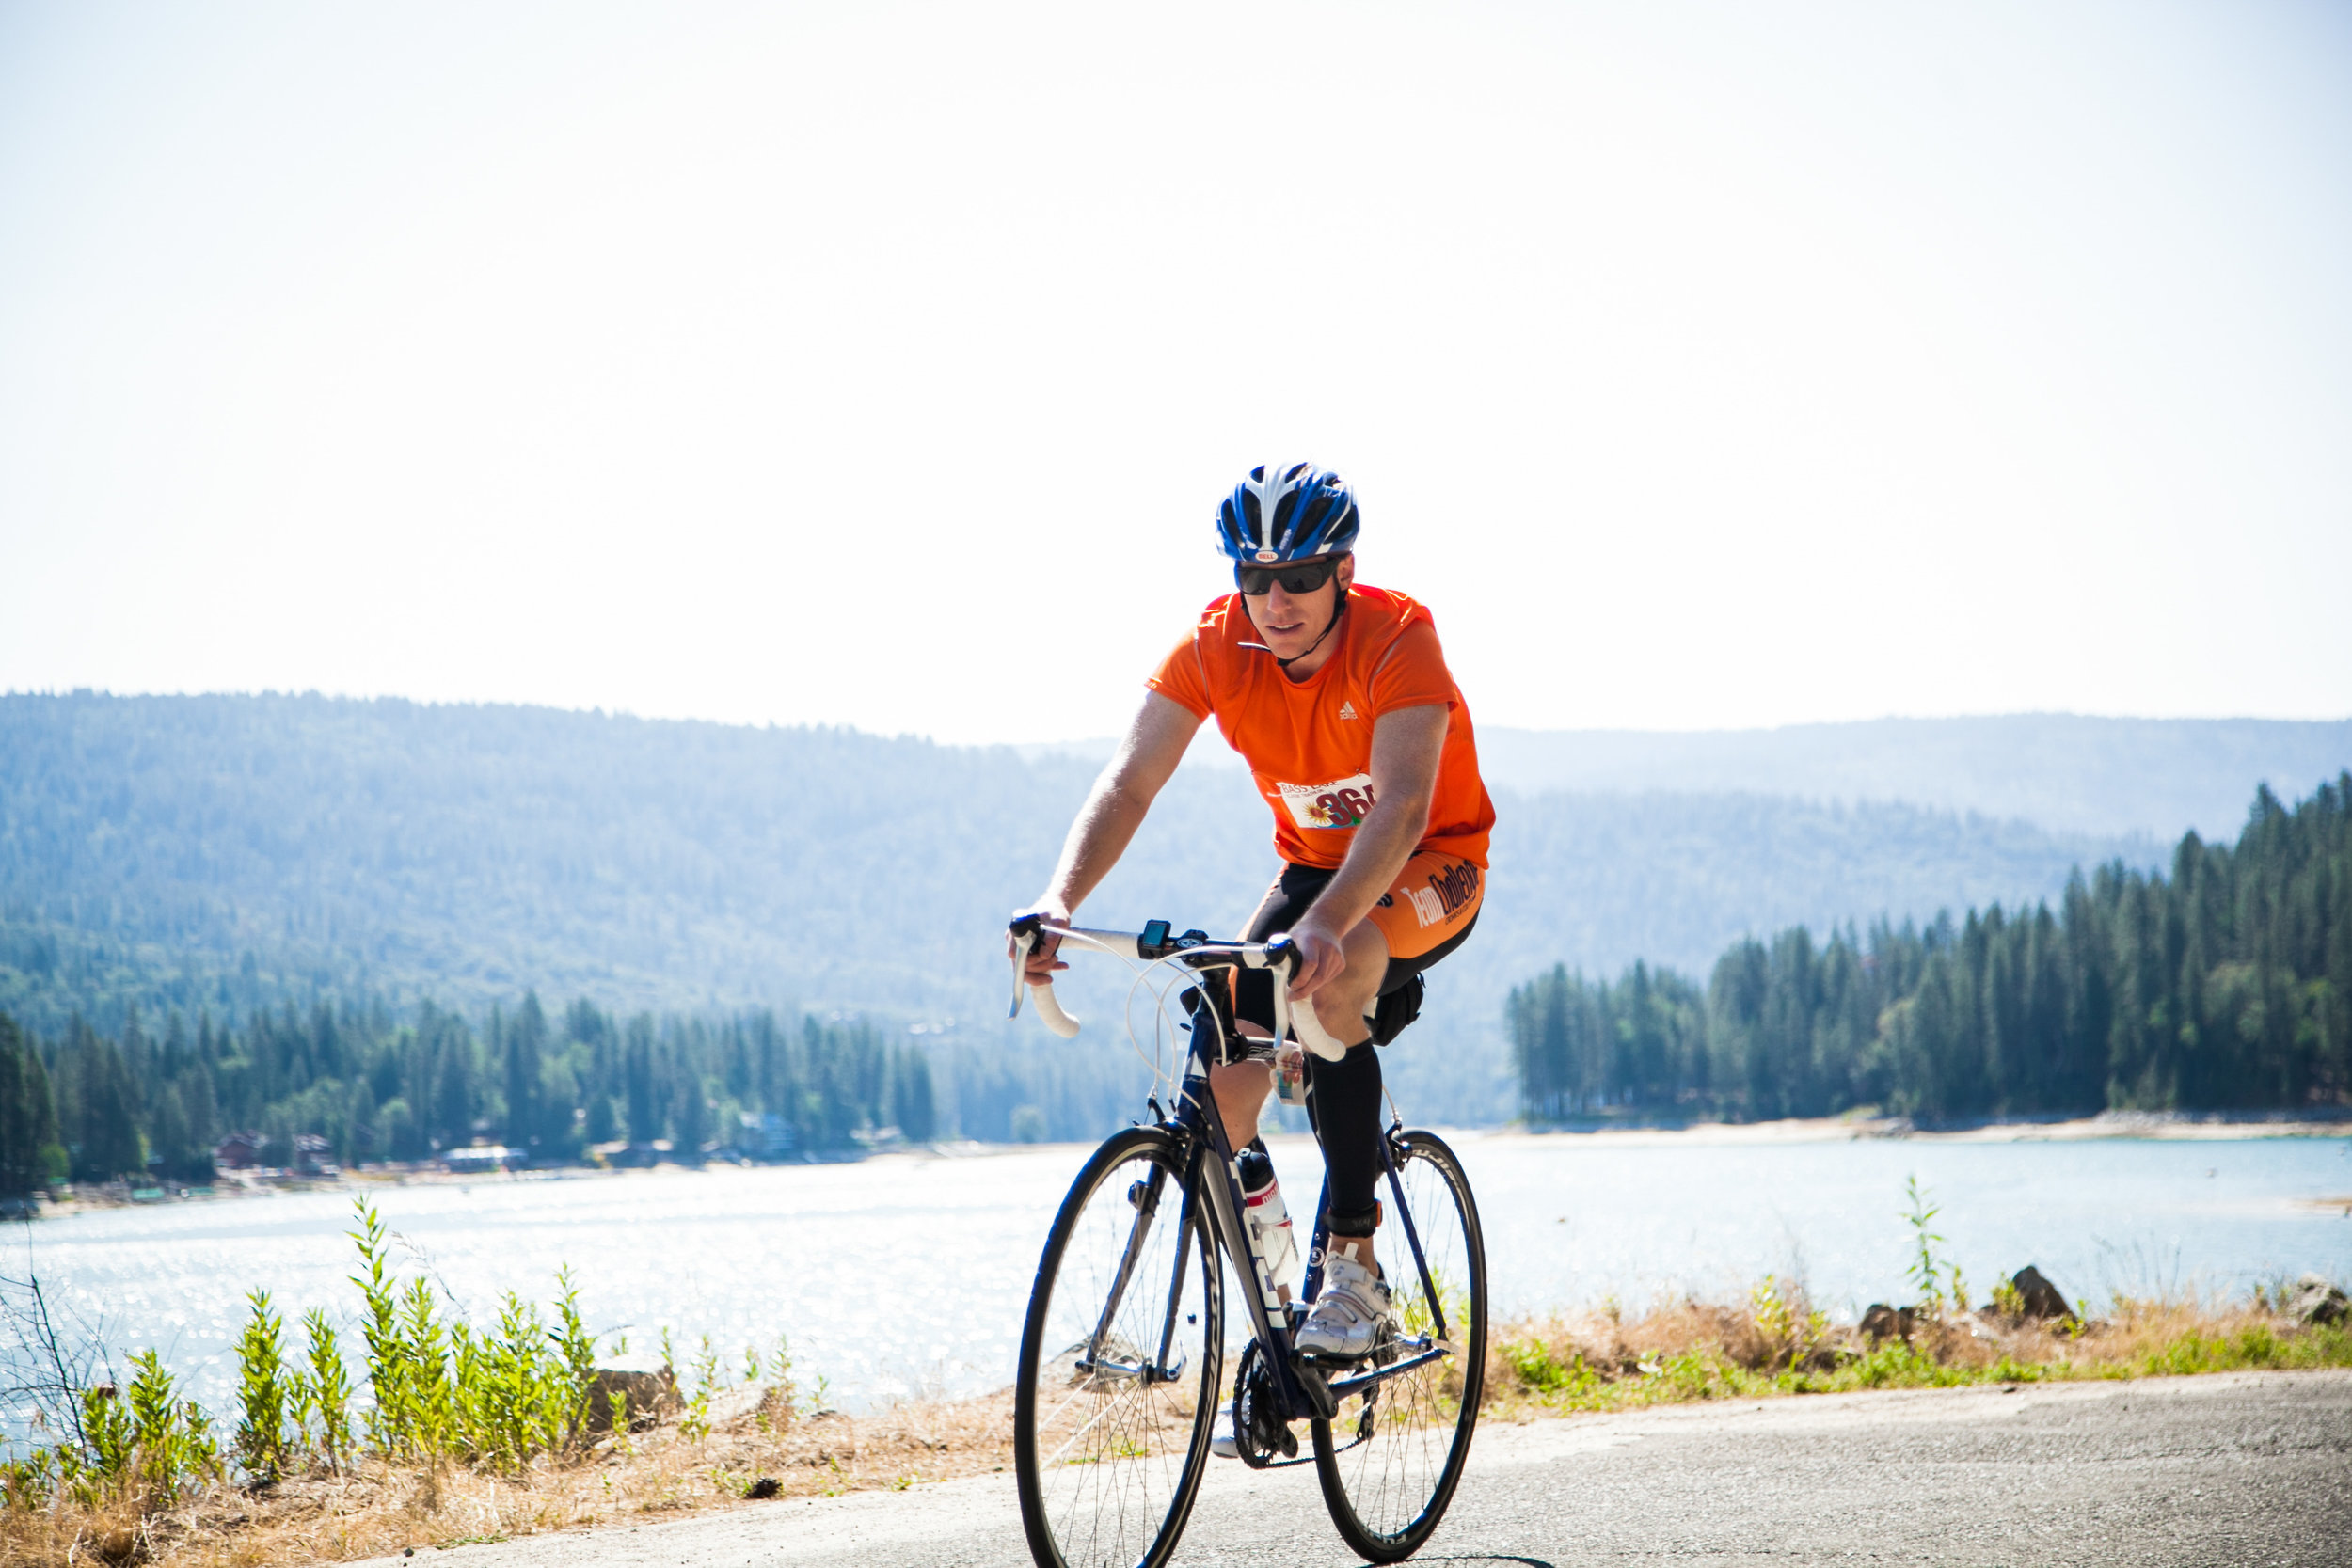 BASS LAKE | yOSEMITE TRIATHLON pHOTO BY ANNIE STARKEY PHOTOGRAPHY